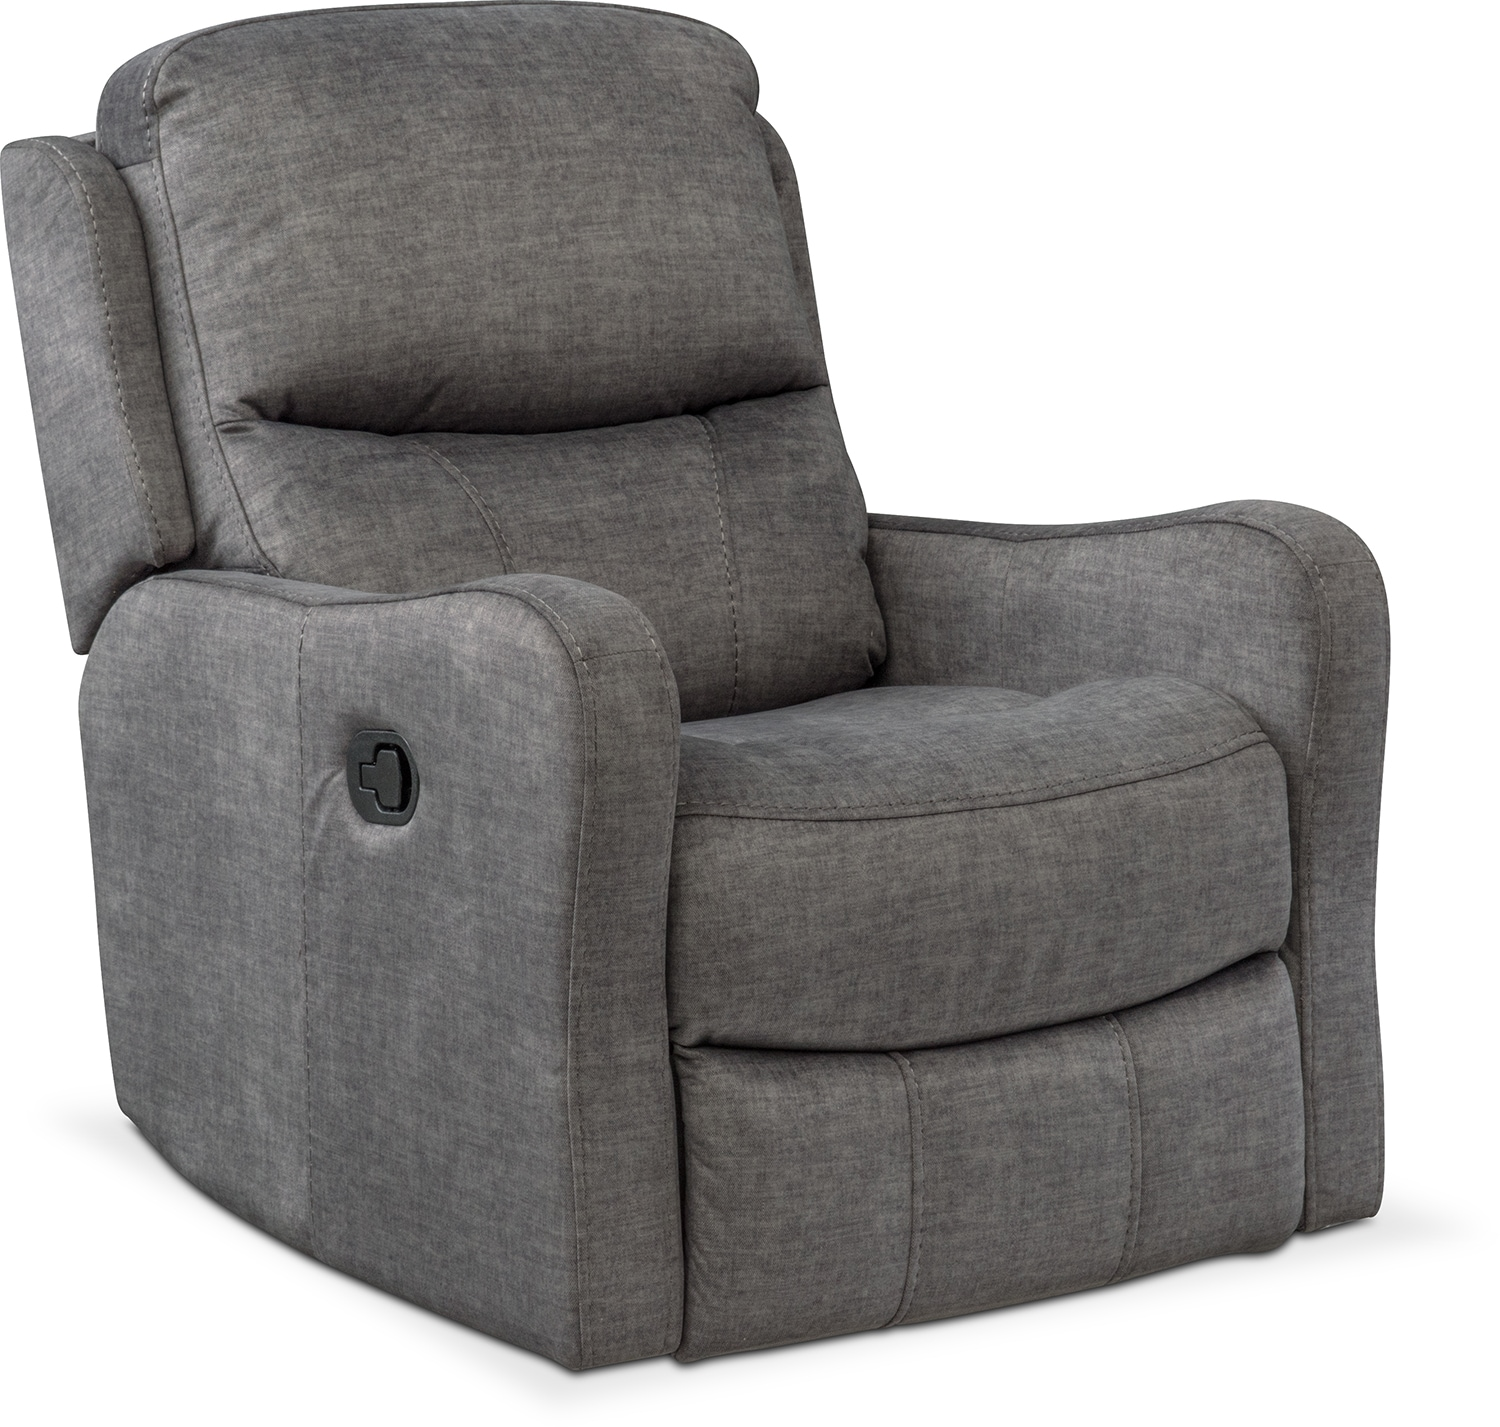 recliner charlotte ii cmscslov pinterest city loveseat value furniture best on loveseats power images recliners